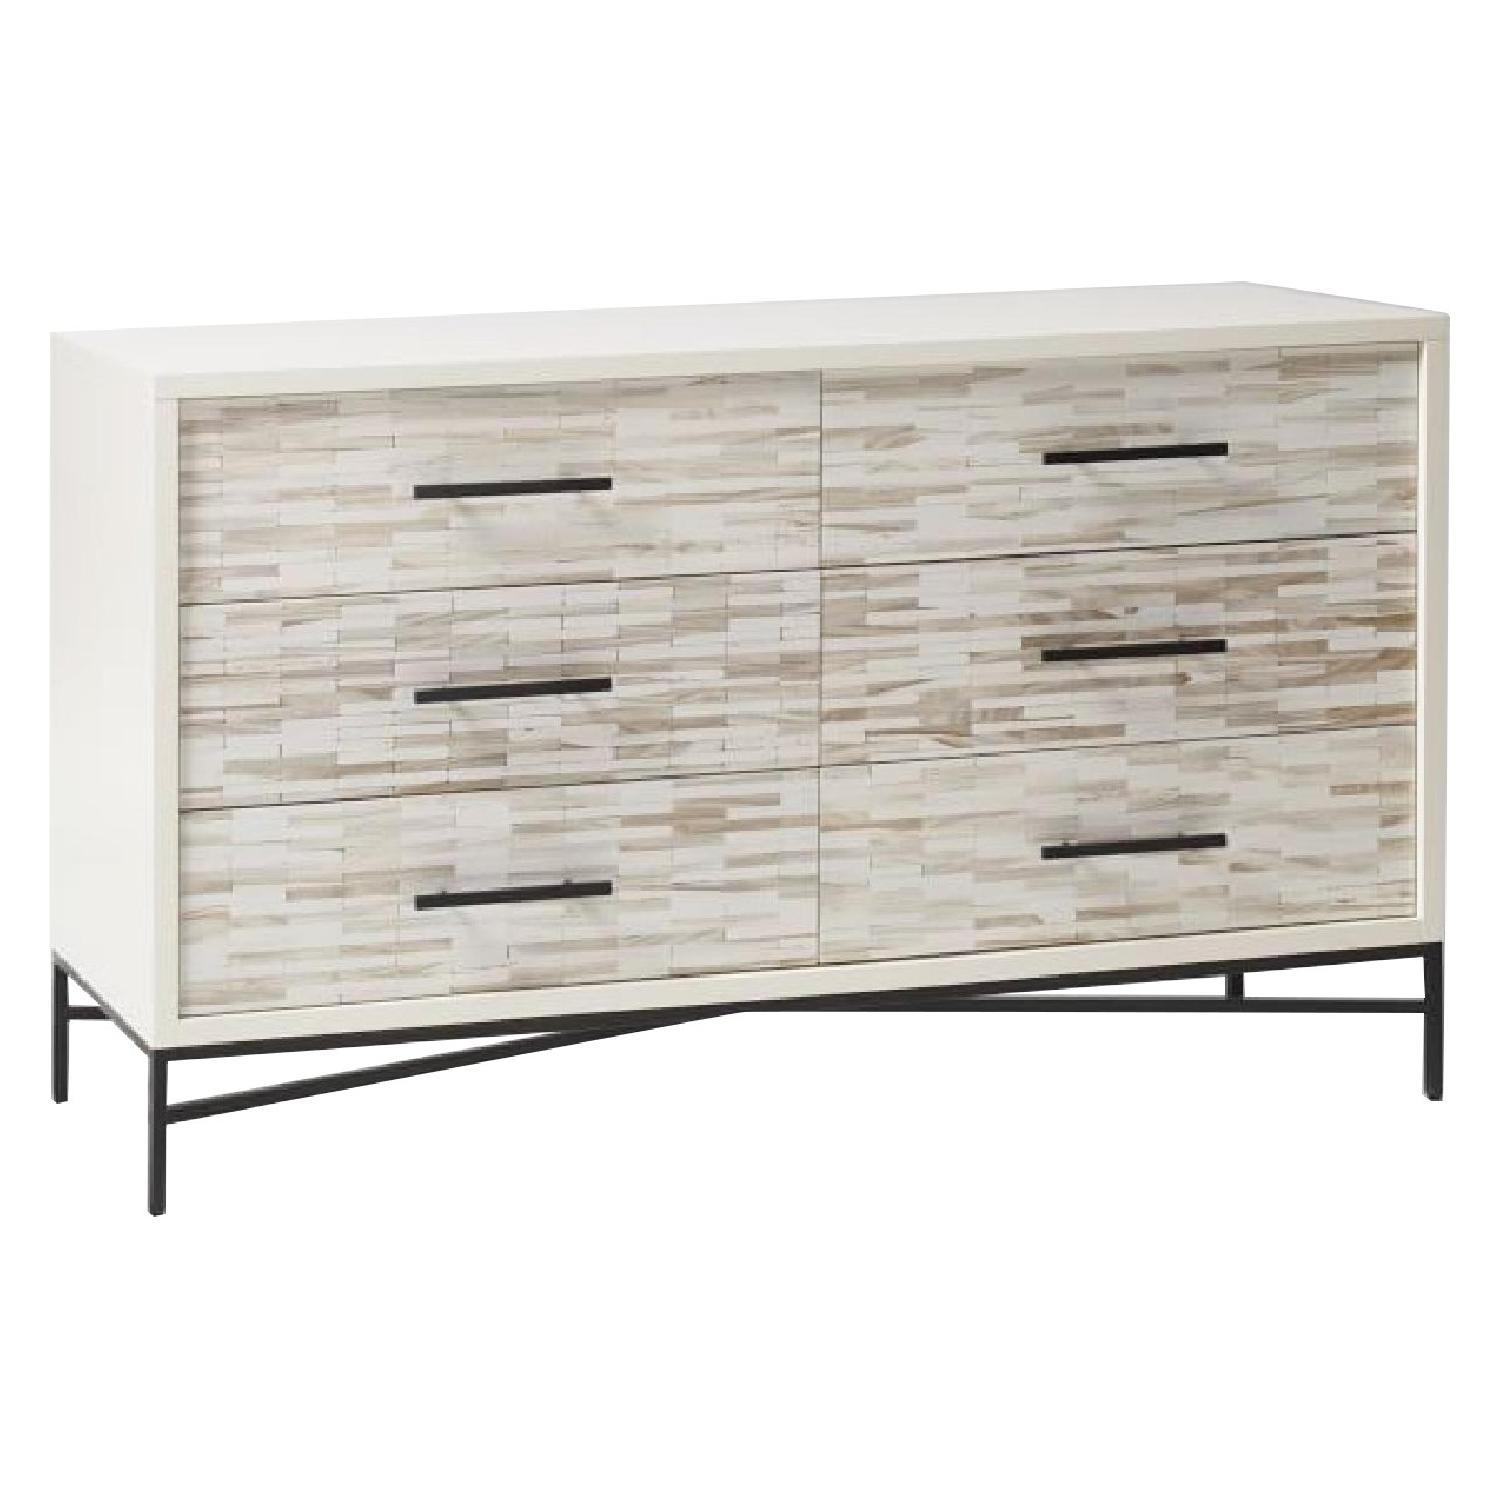 West Elm Wood Tiled 6-Drawer Dresser in Whitewash